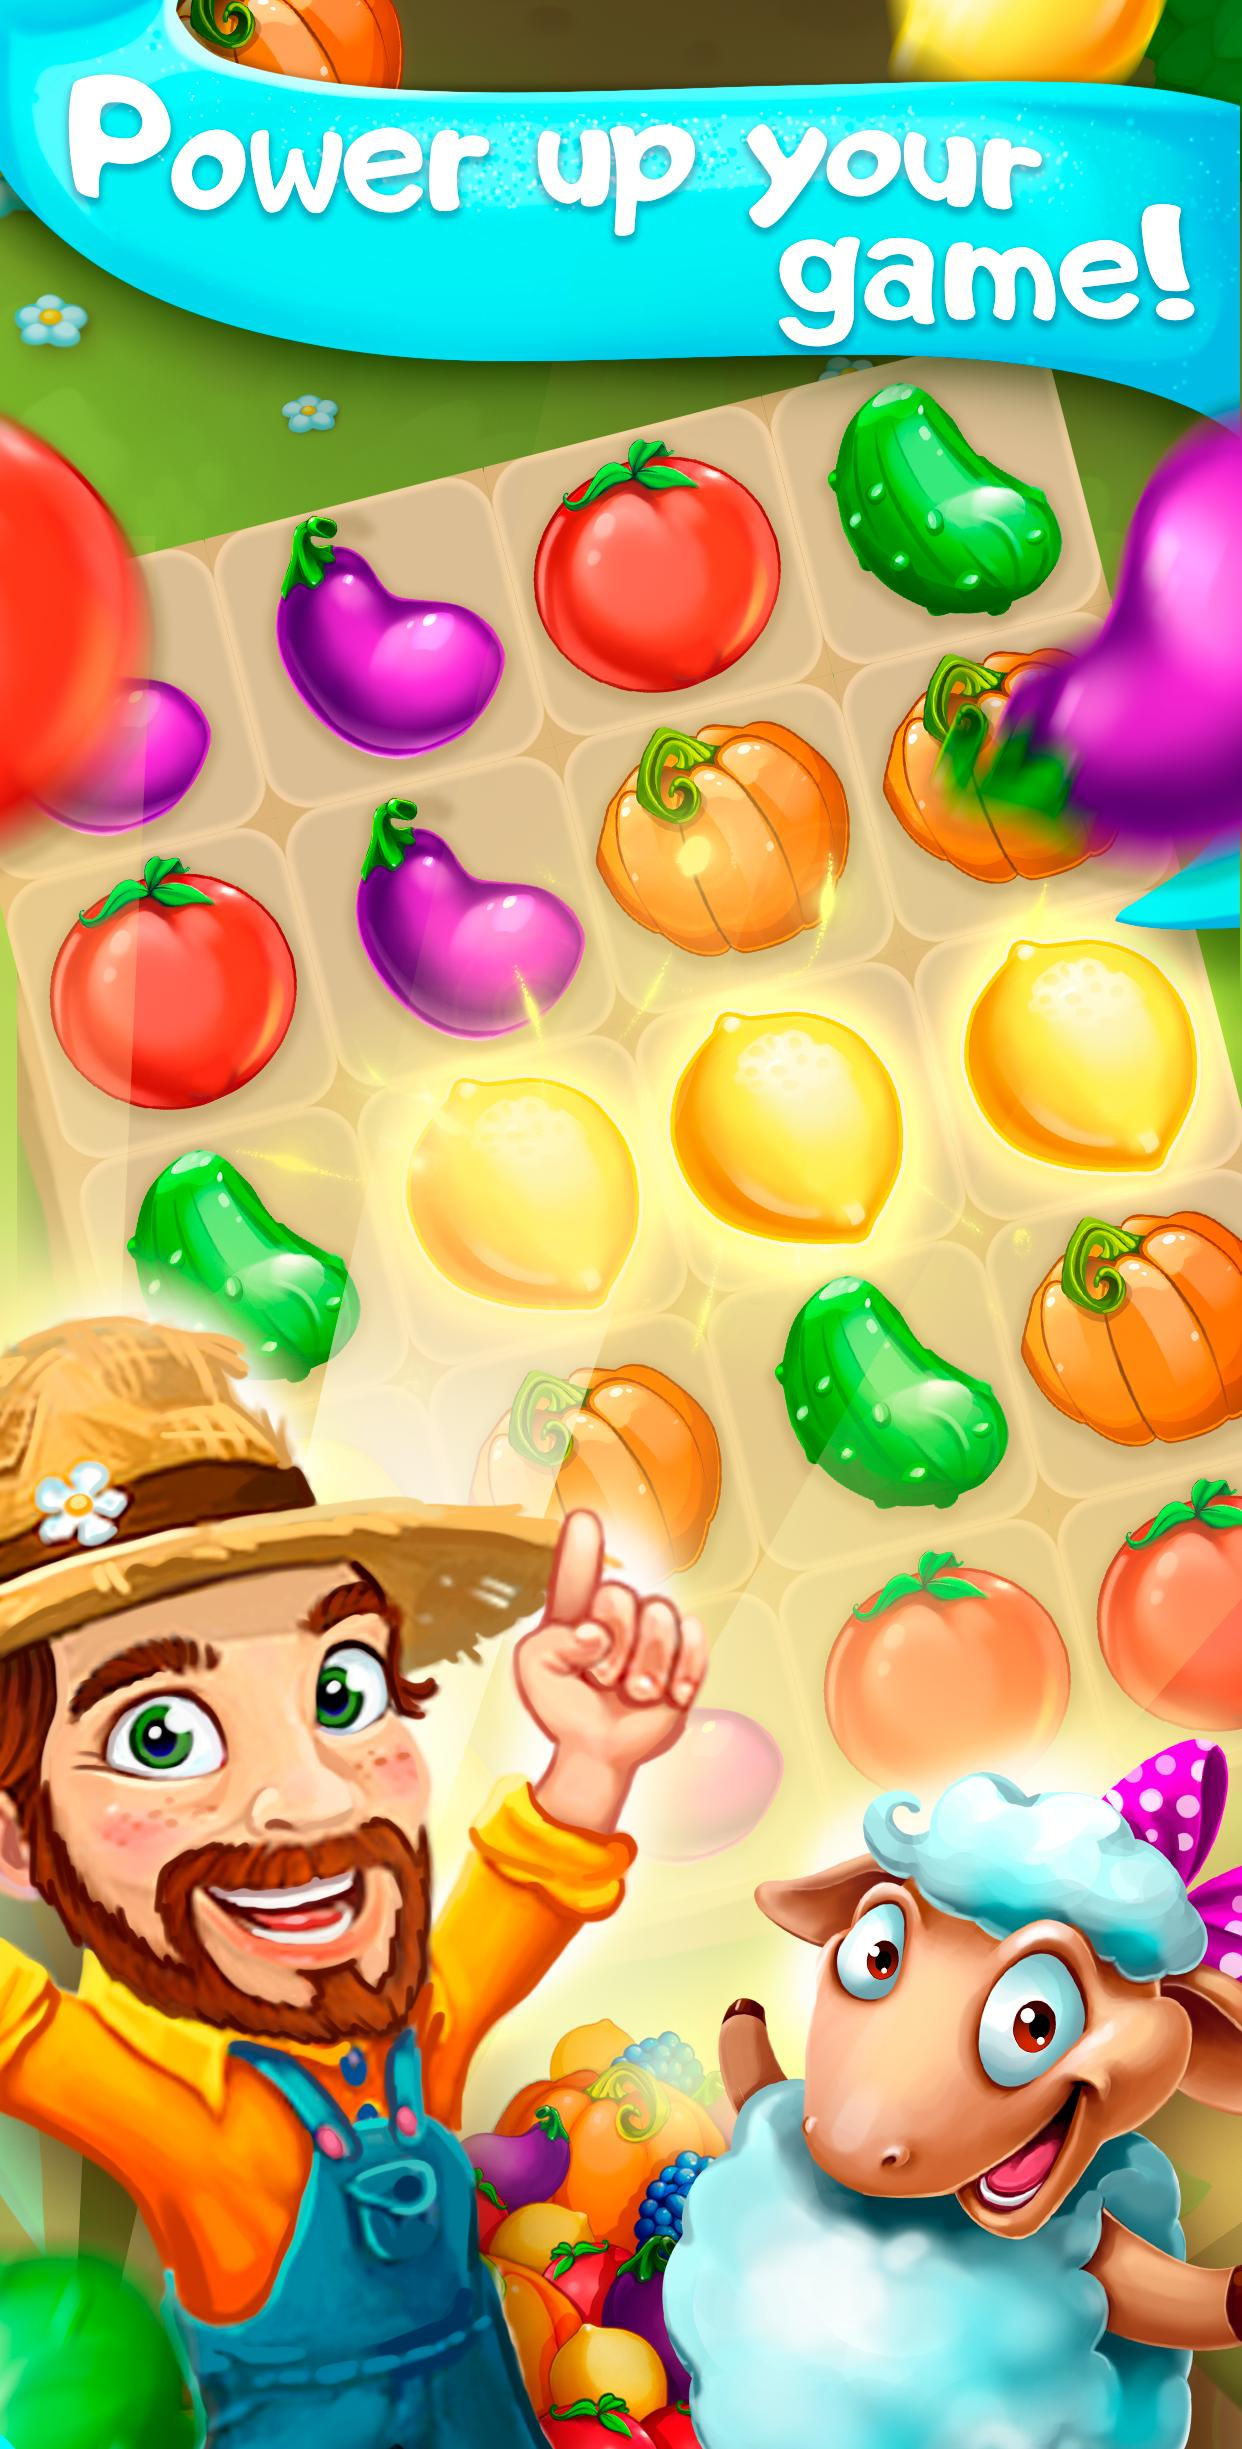 Funny Farm match 3 Puzzle game 1.53.0 Screenshot 4